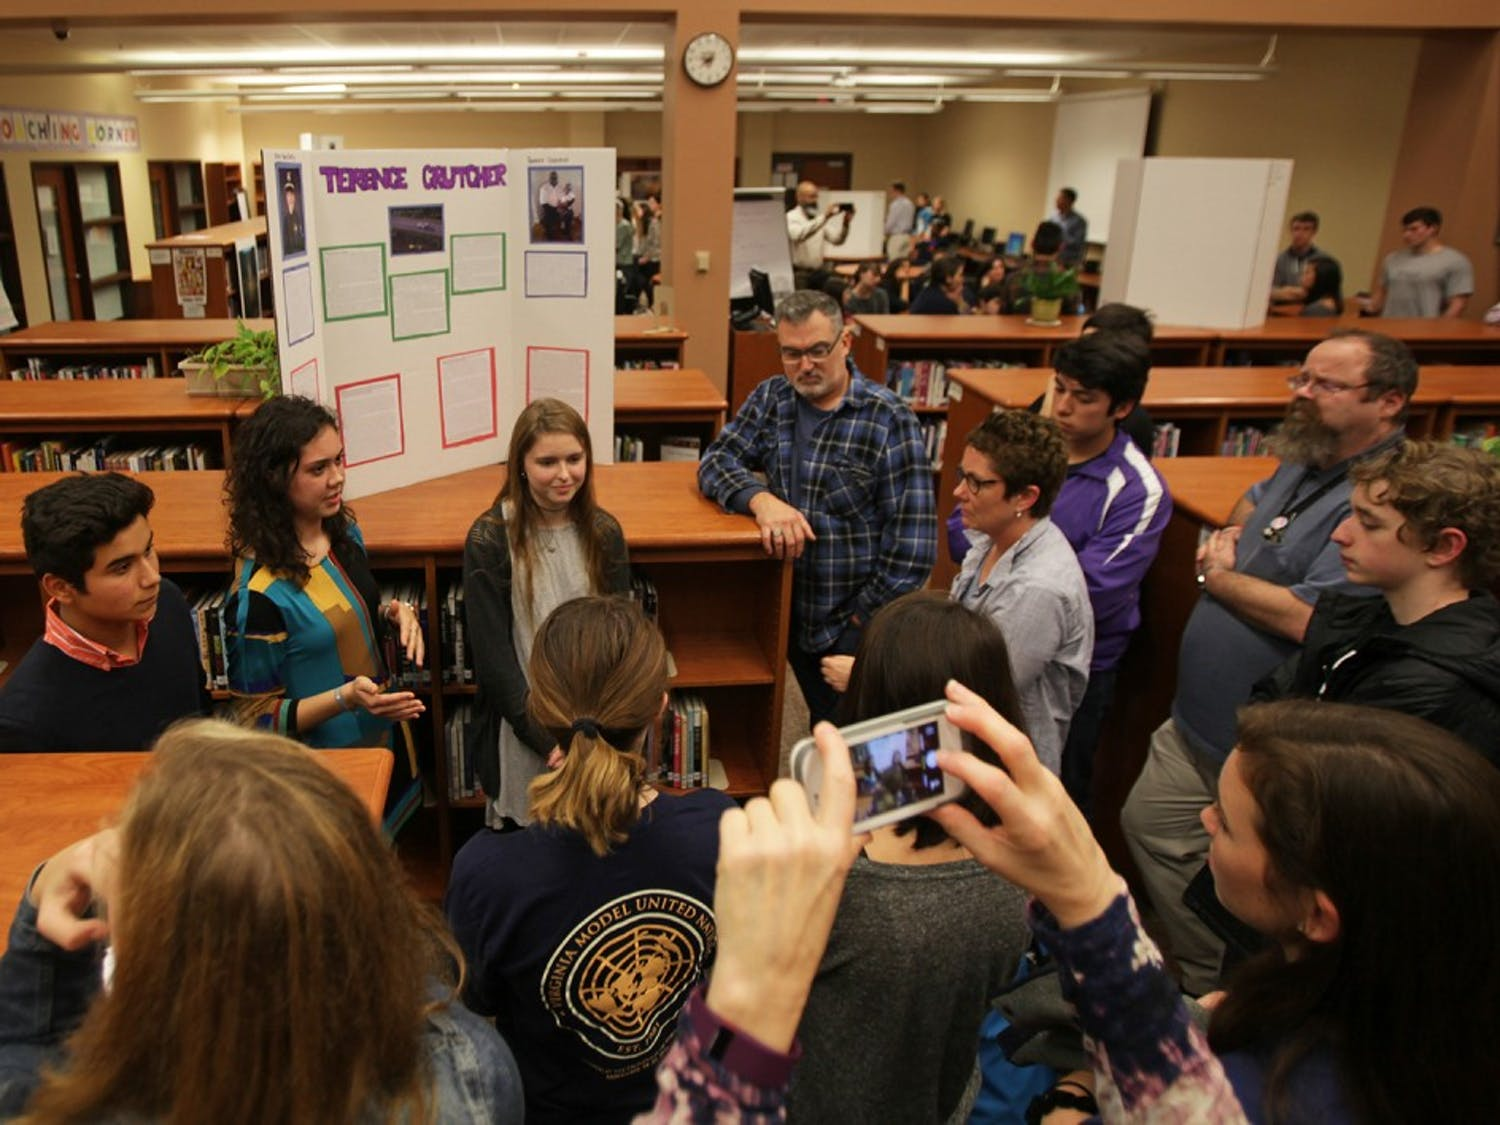 Carrboro High School students (from left) Amado Ruiz-Perez, Sophie Therber and Lily Ervin, give a presentation on Terence Crutcher, one of many victims of recent police shootings Tuesday evening.